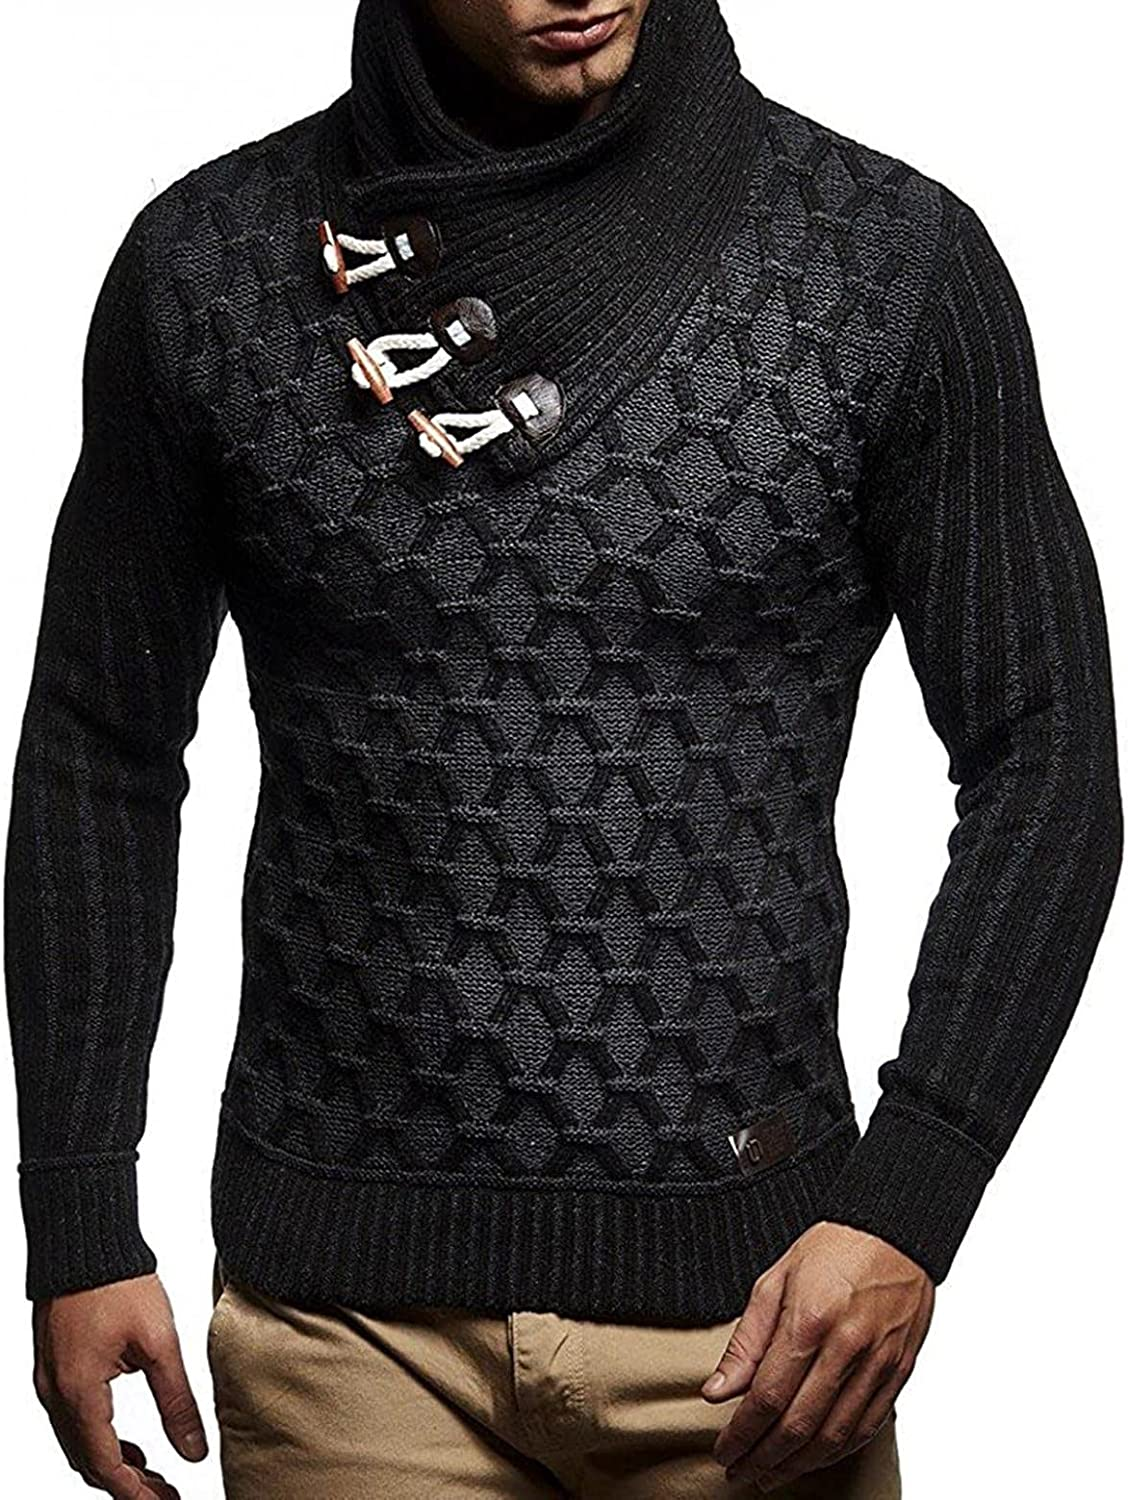 Mens Knitted Sweaters Long Sleeve Turtleneck Pullover Sweatershirts Lightweight Thicken Top Thermal Wool Blouse